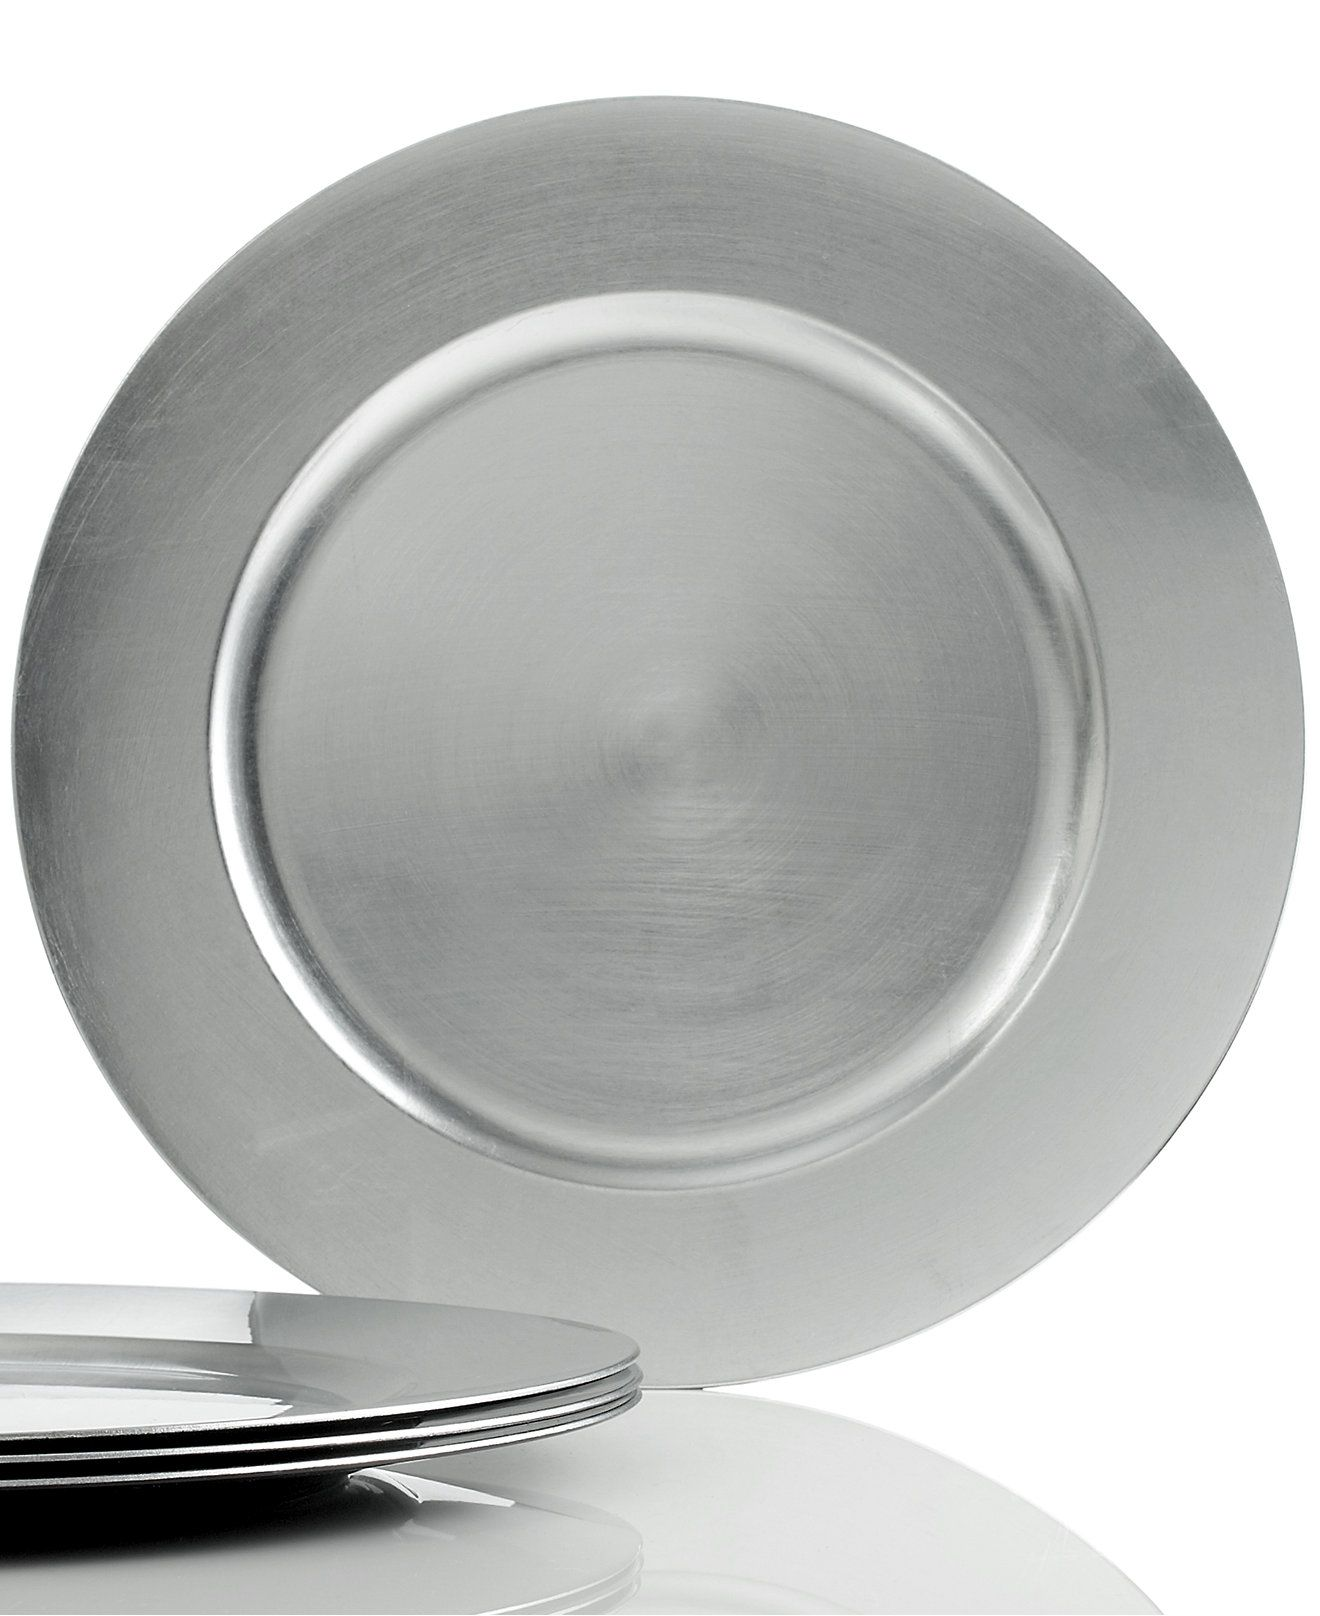 $14.95 Charter Club Dinnerware Set of 4 Platinum Charger Plates - Serveware - Dining u0026 Entertaining - Macyu0027s Bridal and Wedding Registry  sc 1 st  Pinterest : dinnerware and serveware sets - Pezcame.Com